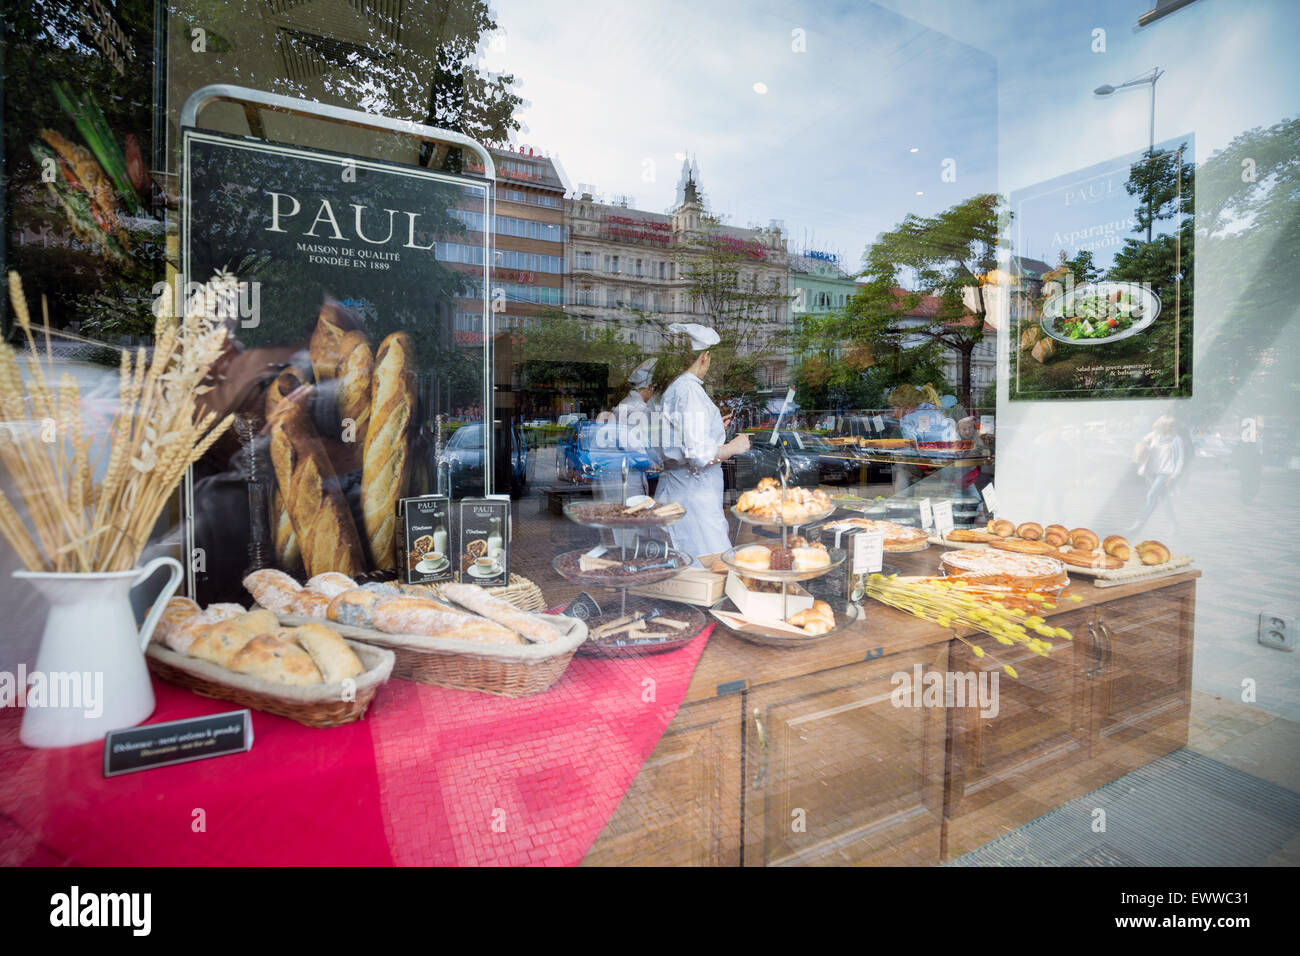 bakery shop Paul on display, Prague is the capital and largest city of the Czech Republic, Europe - Stock Image